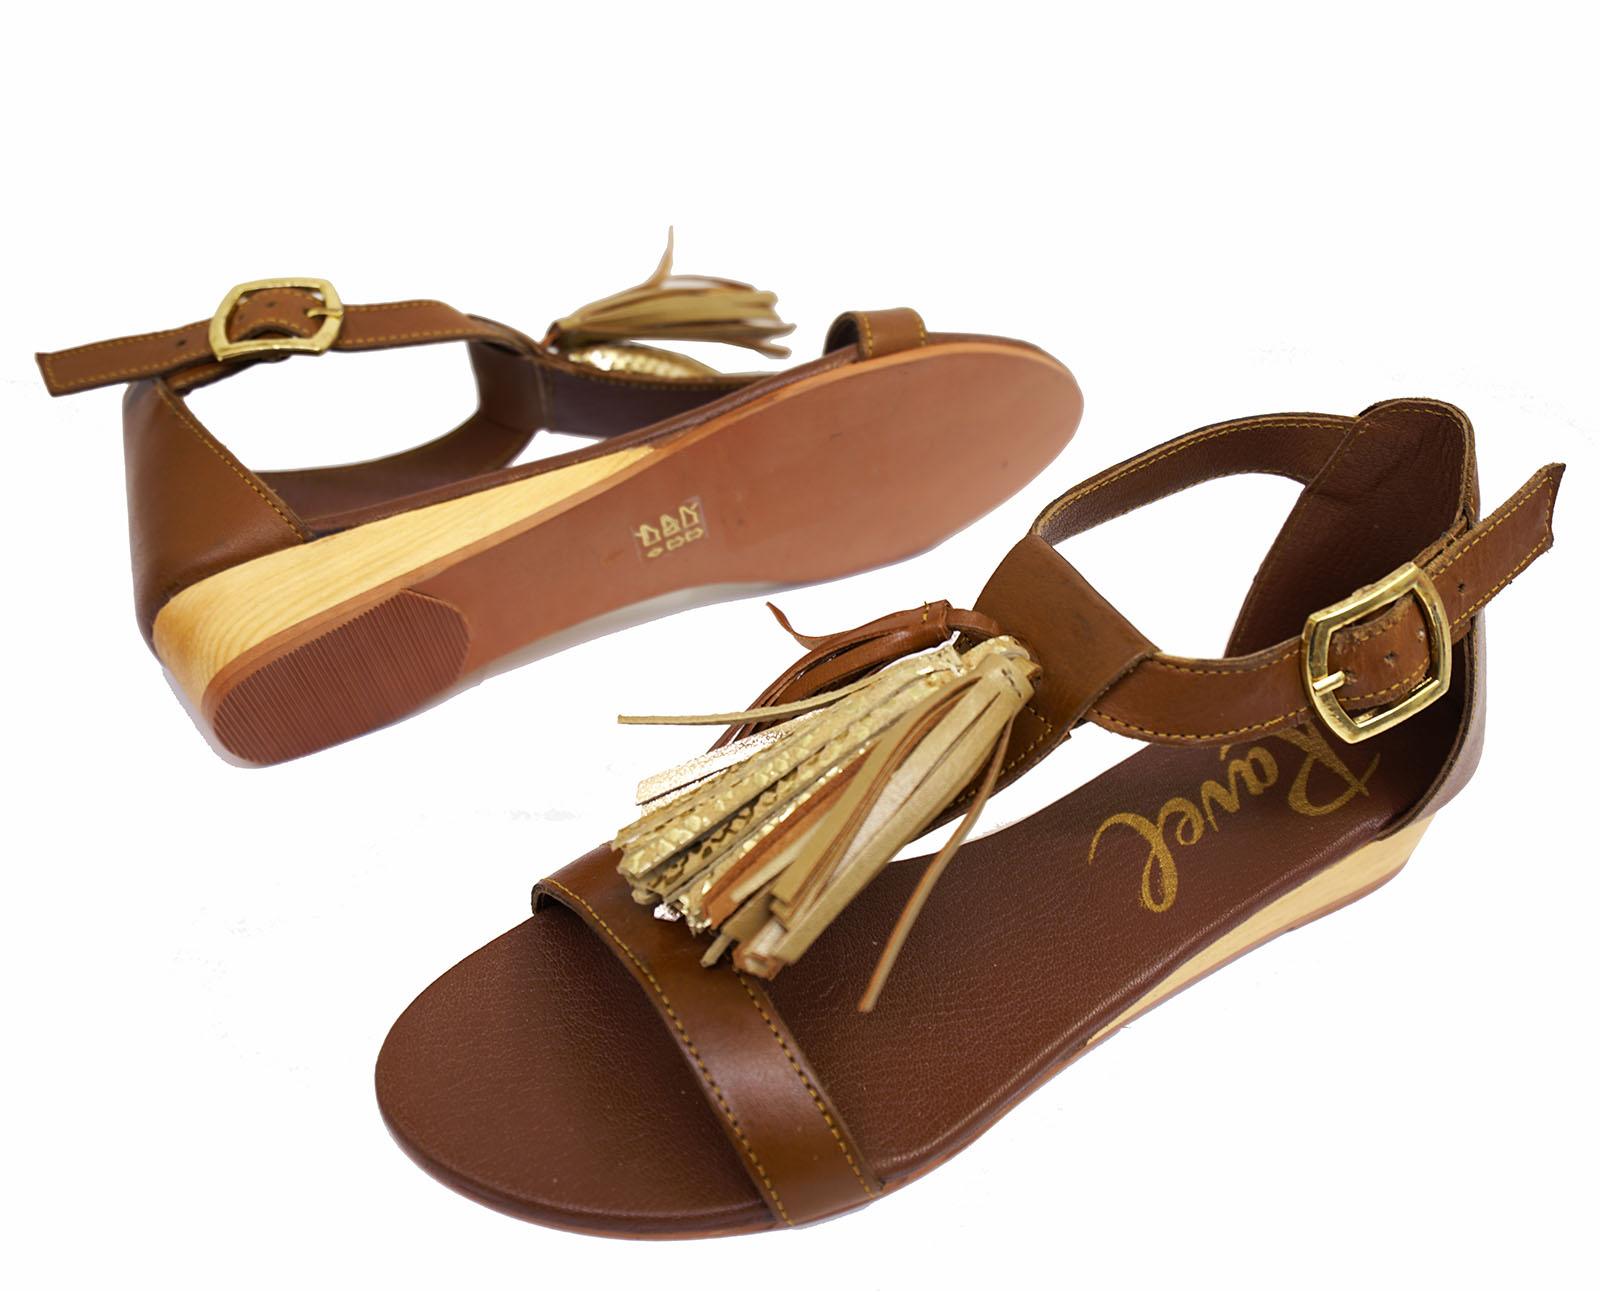 LADIES-RAVEL-ASTORIA-FLAT-LEATHER-TAN-SANDALS-SLIP-ON-T-BAR-STRAPPY-SHOES-UK-3-8 thumbnail 10